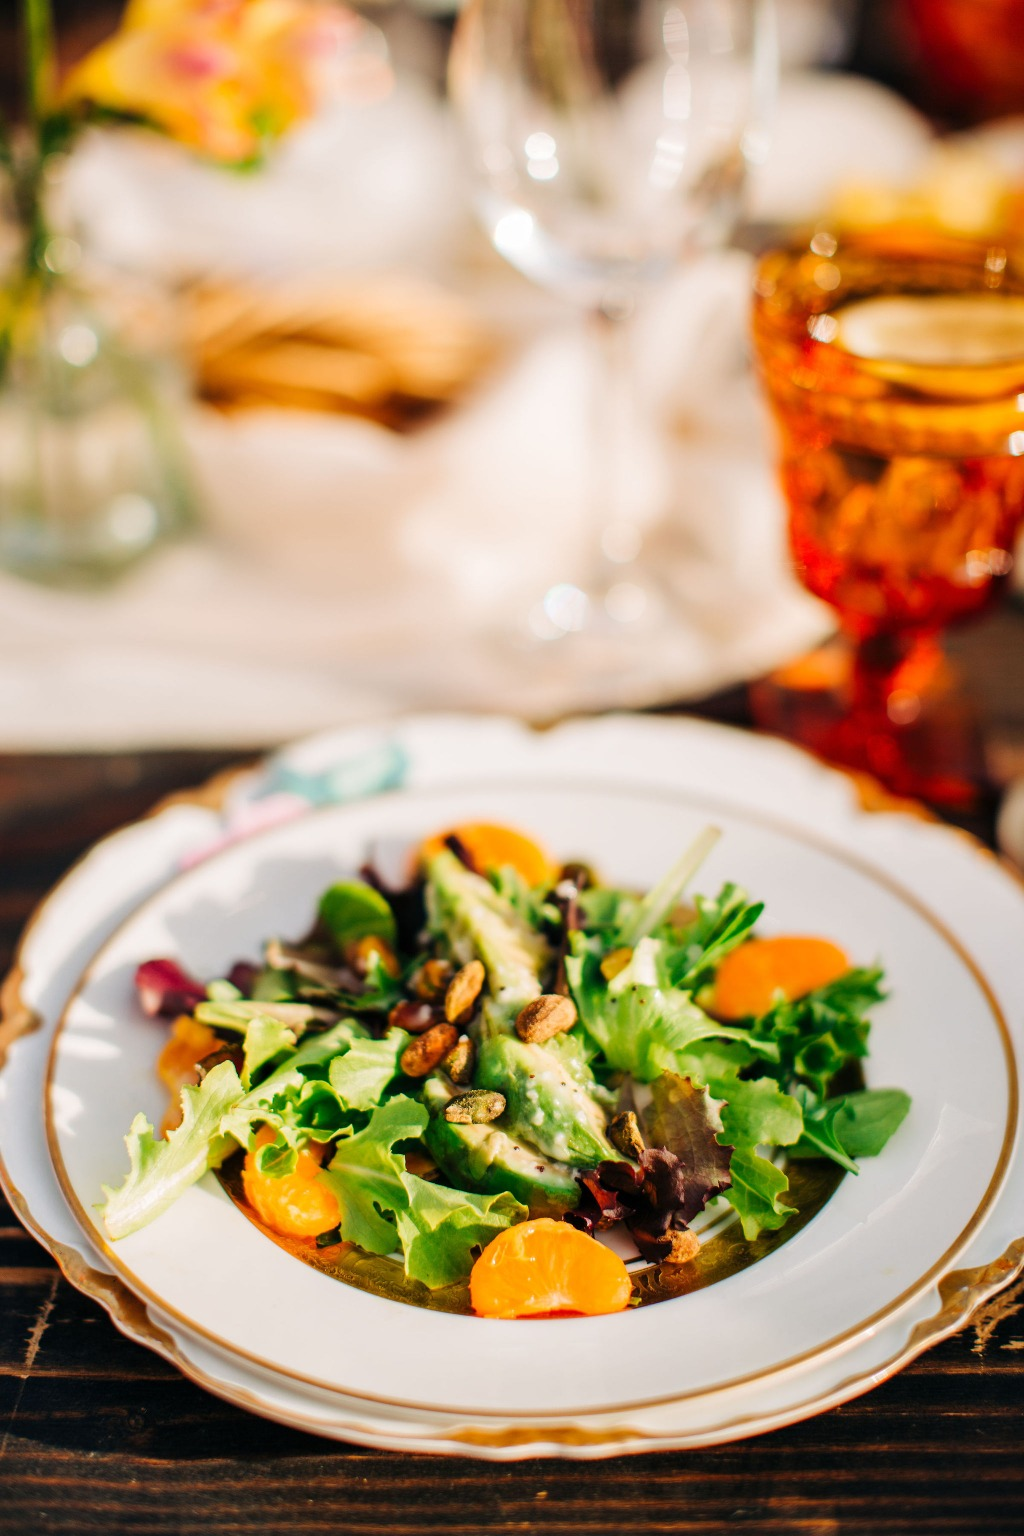 Start your menu off with a beautiful, seasonal salad!